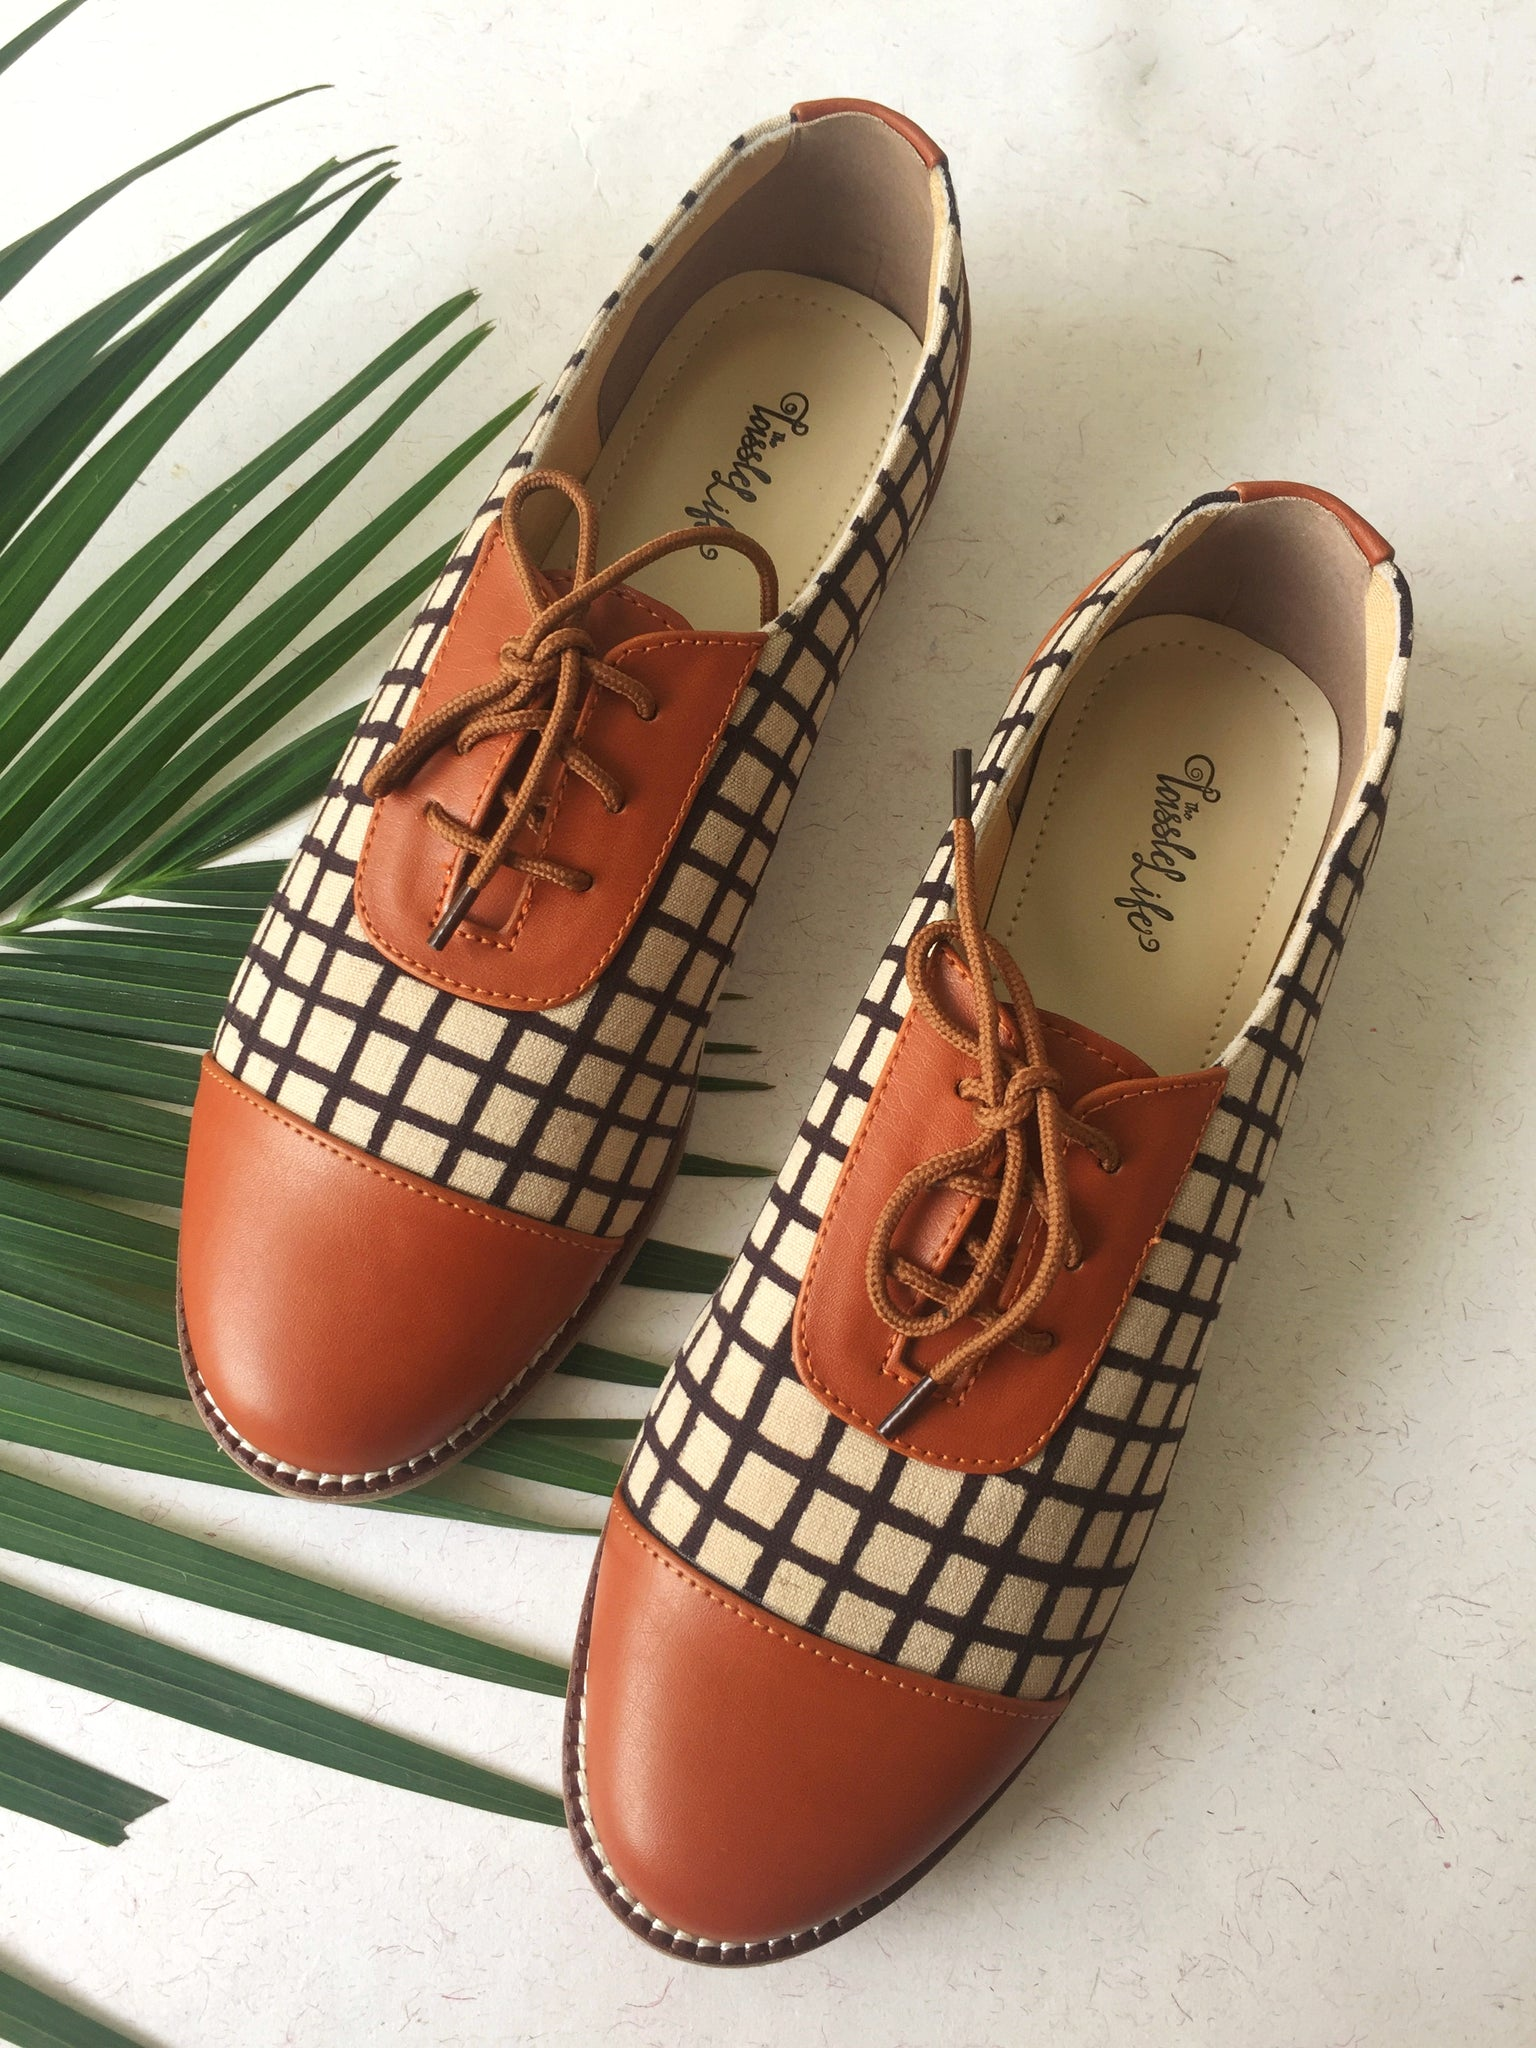 Oxfords - Checkered Print - The Tassle Life